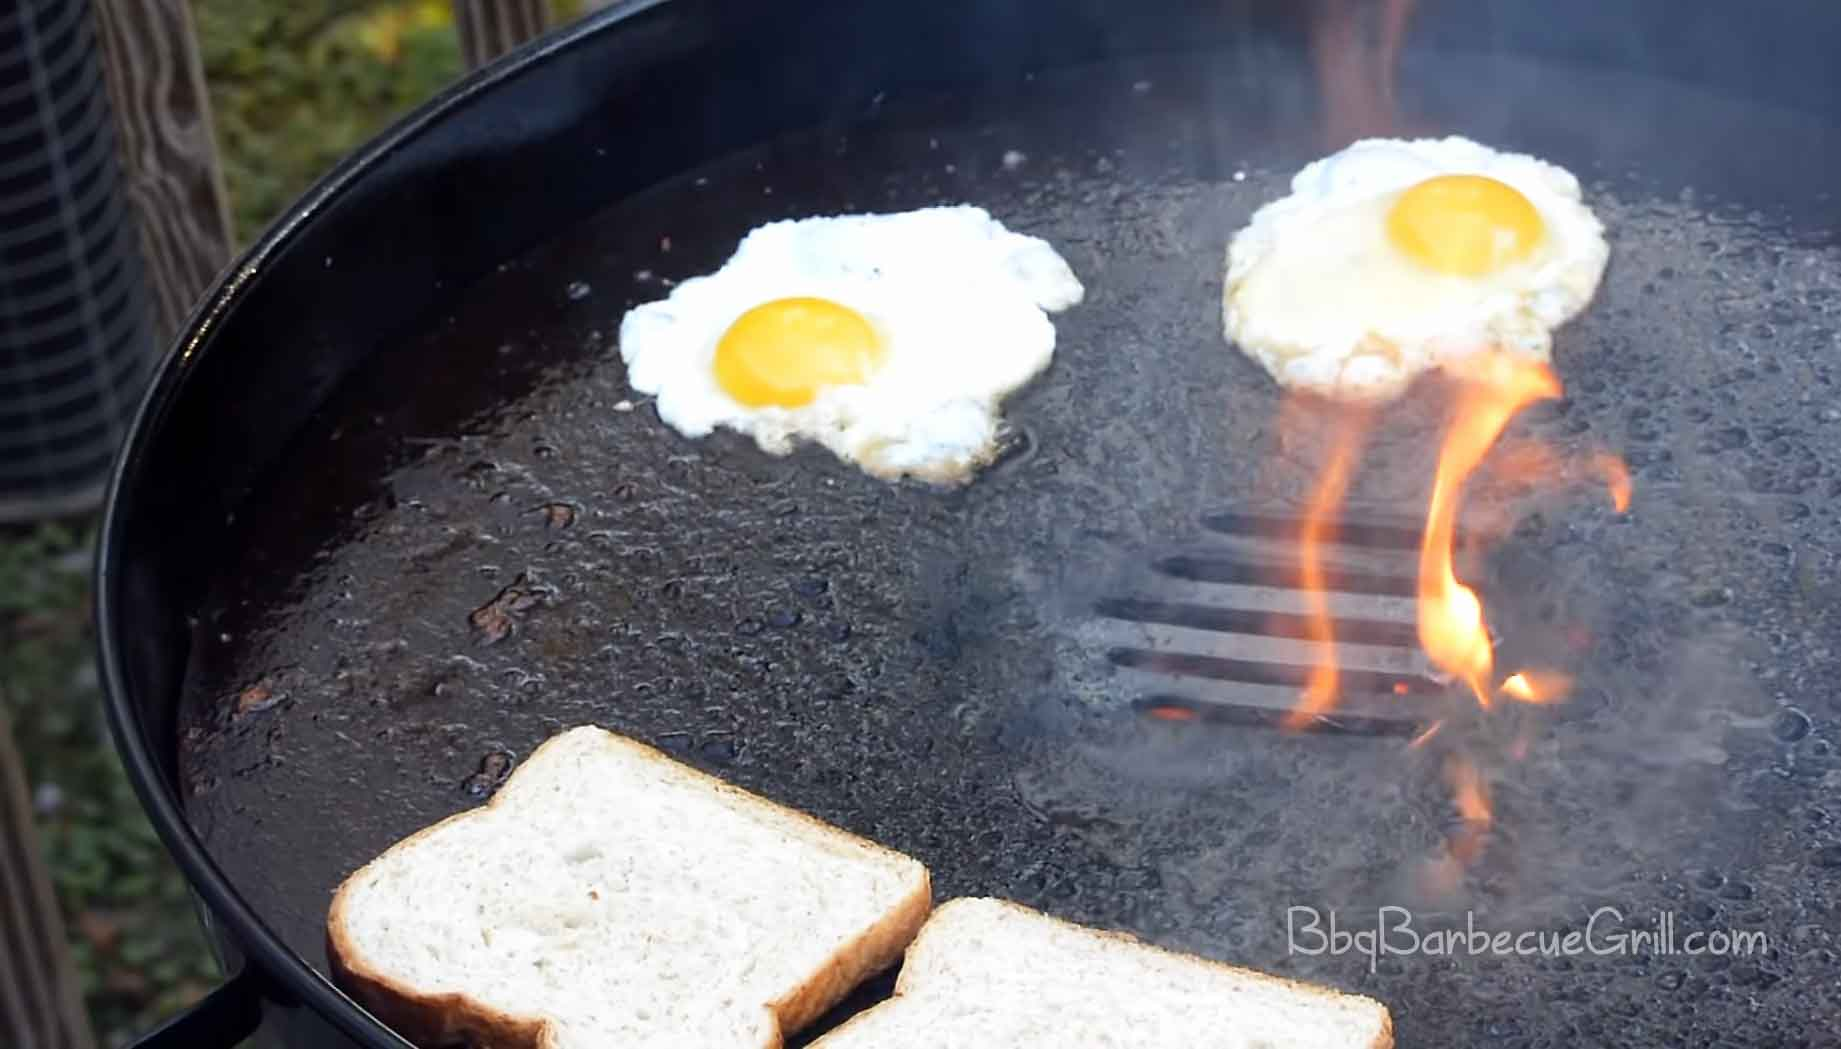 Best charcoal griddle